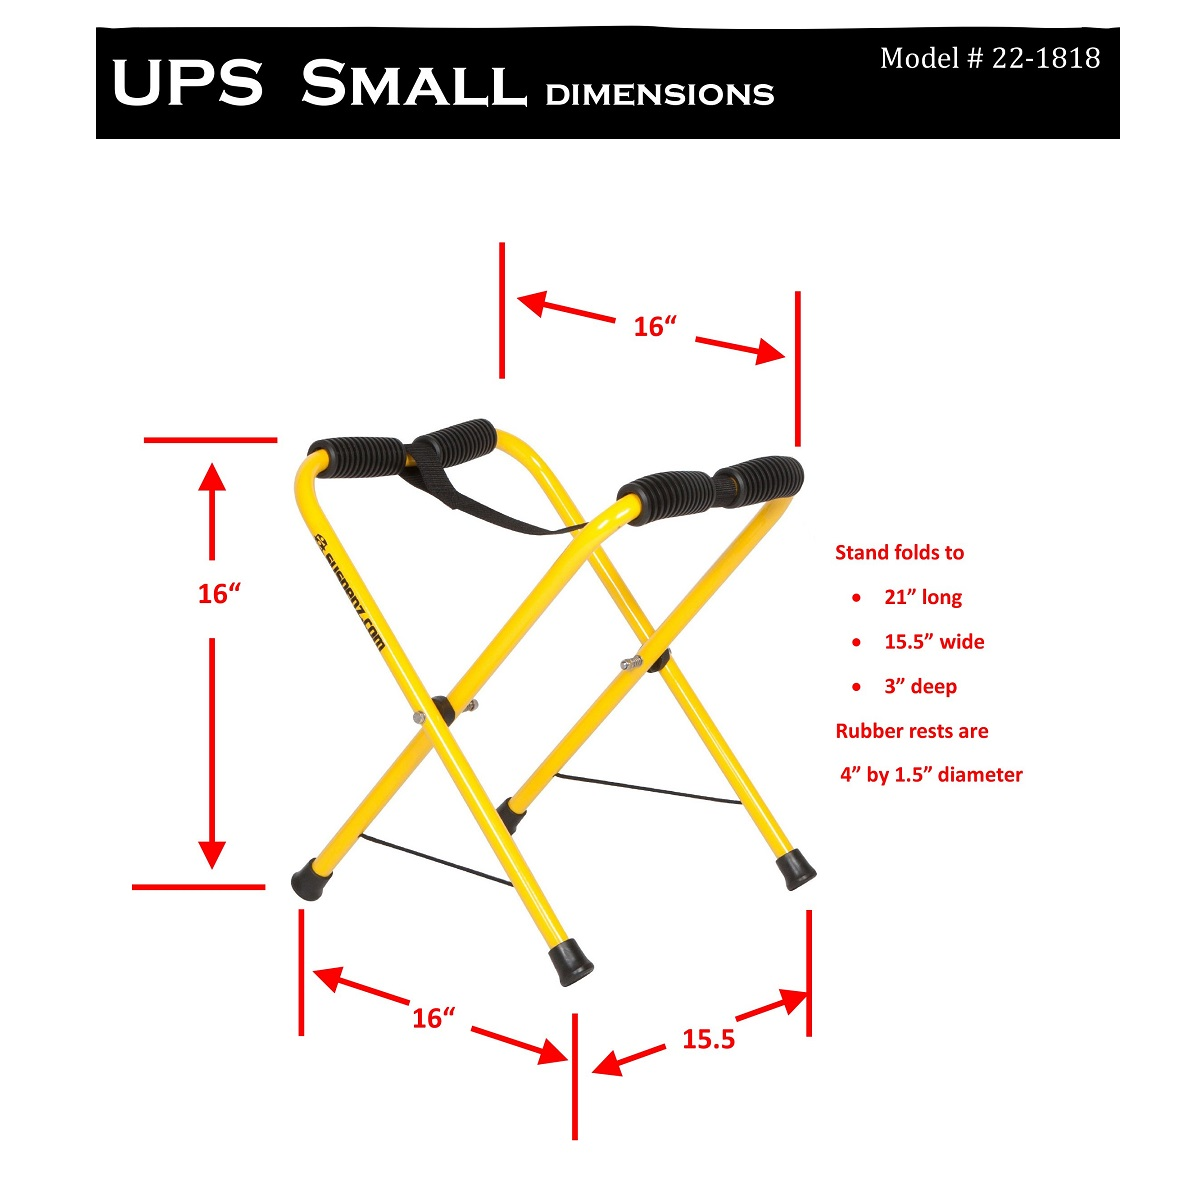 Suspenz Universal Portable Boat Stands - Small Dims